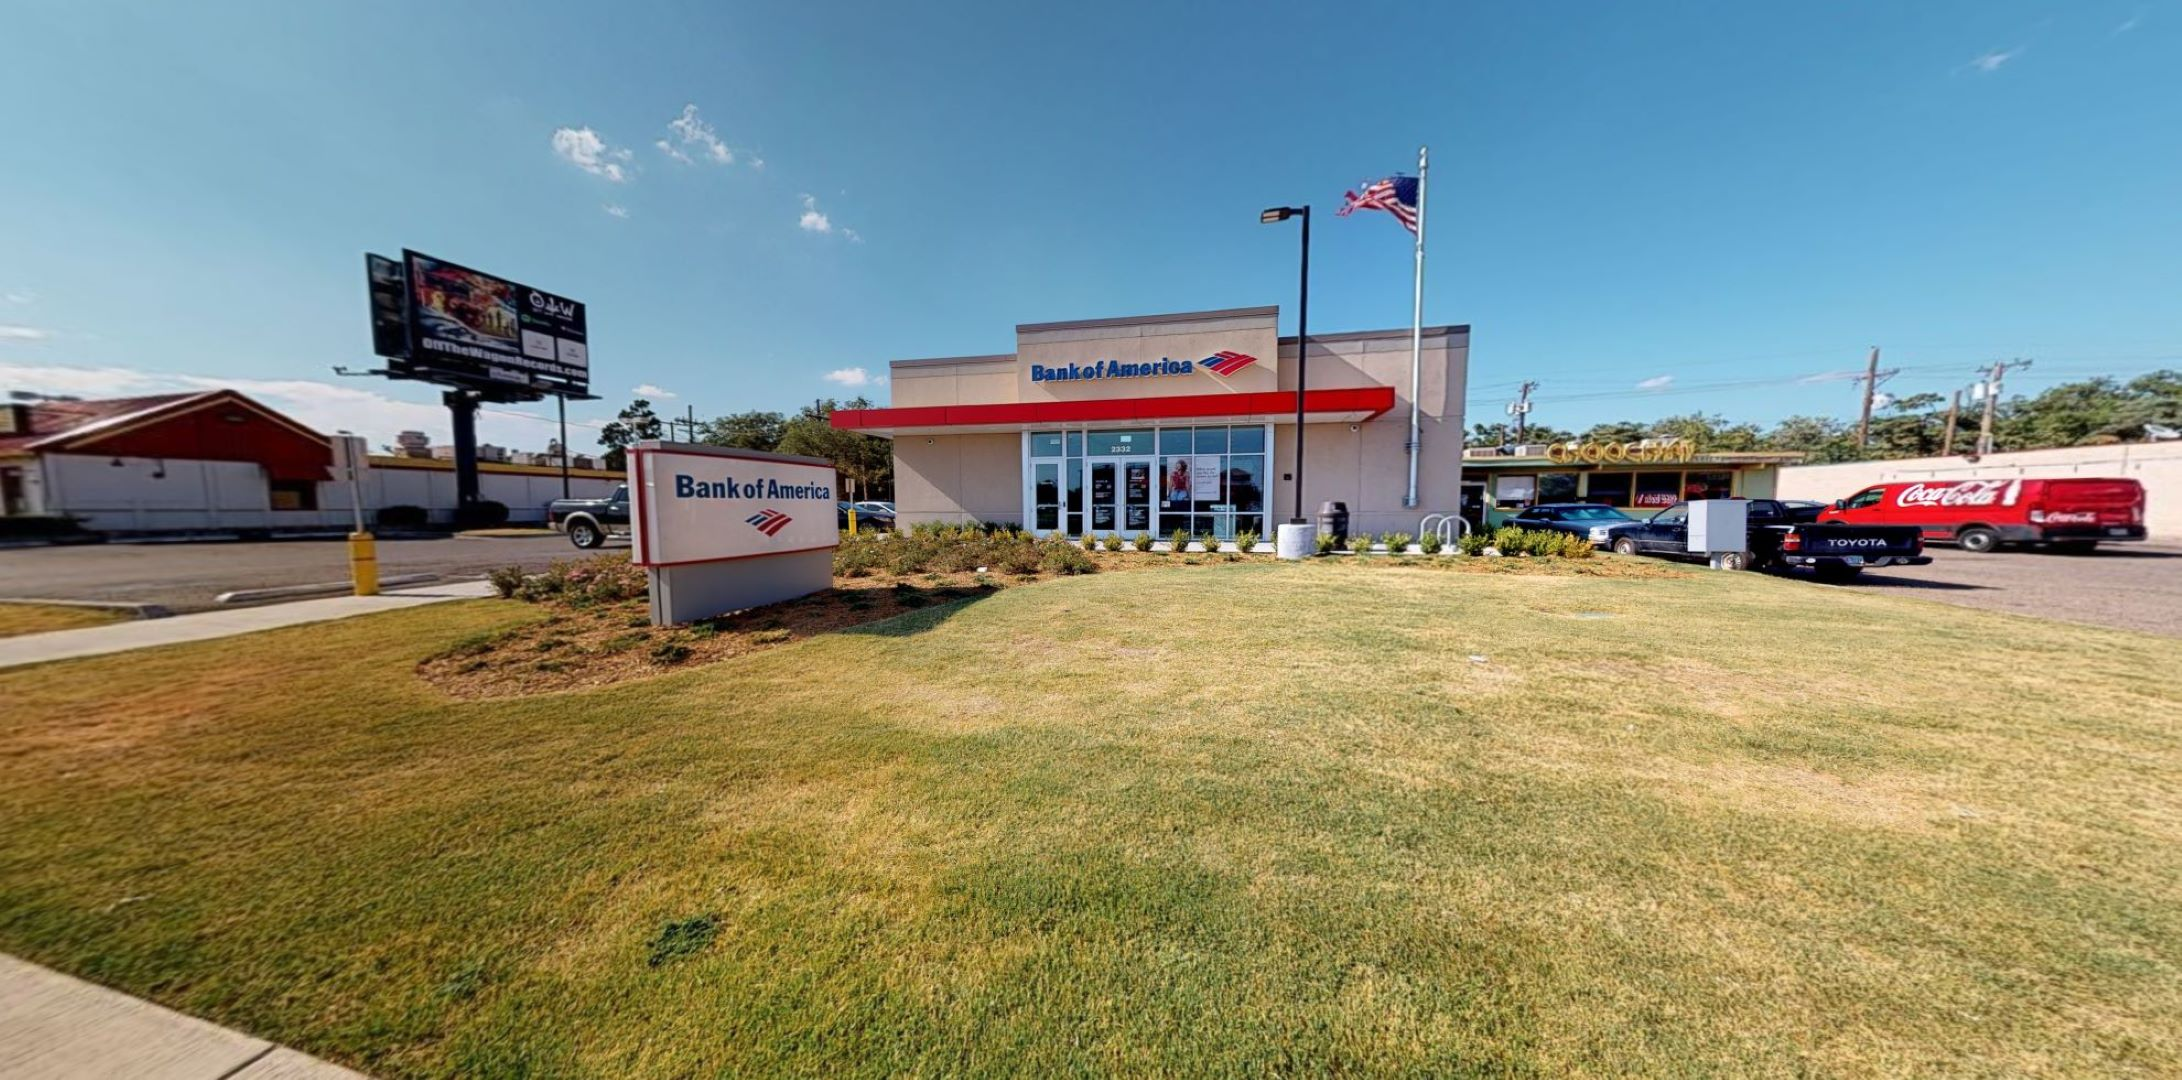 Bank of America financial center with walk-up ATM | 2332 19th St, Lubbock, TX 79401